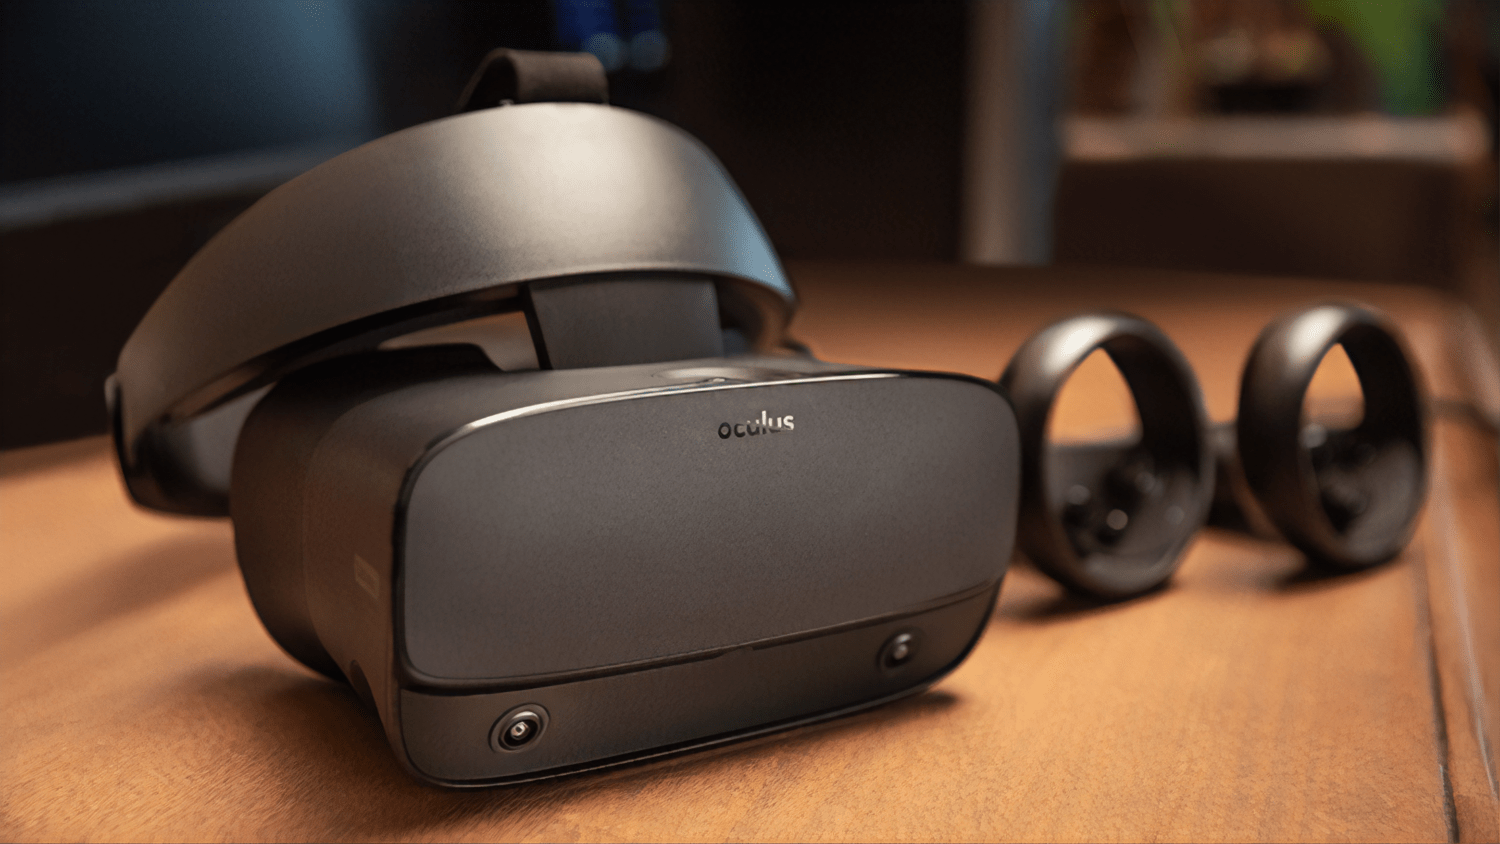 Oculus RiftS Table e1574136229548